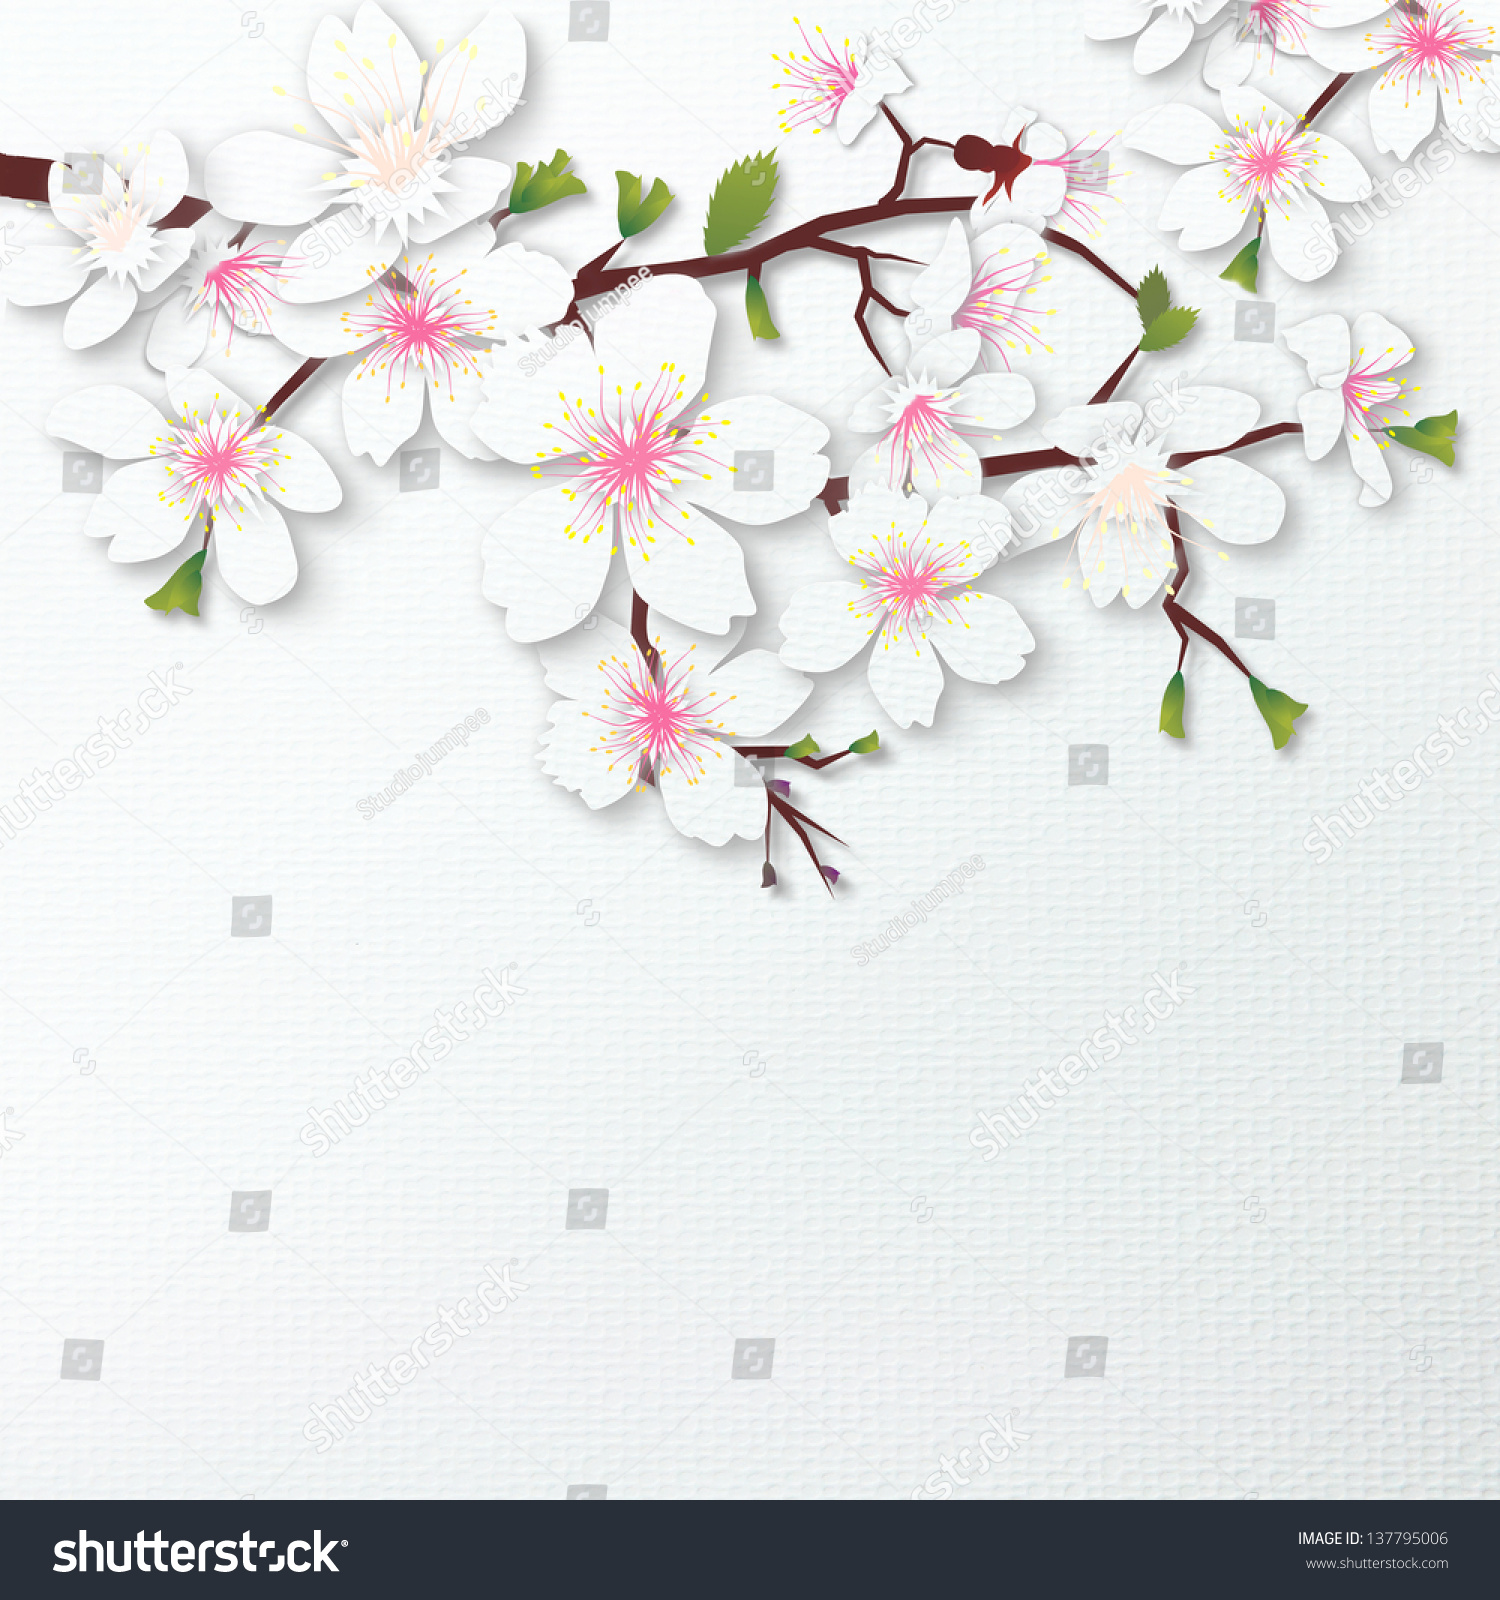 Cherry Blossoms Flower Paper Craft Against Stock Illustration